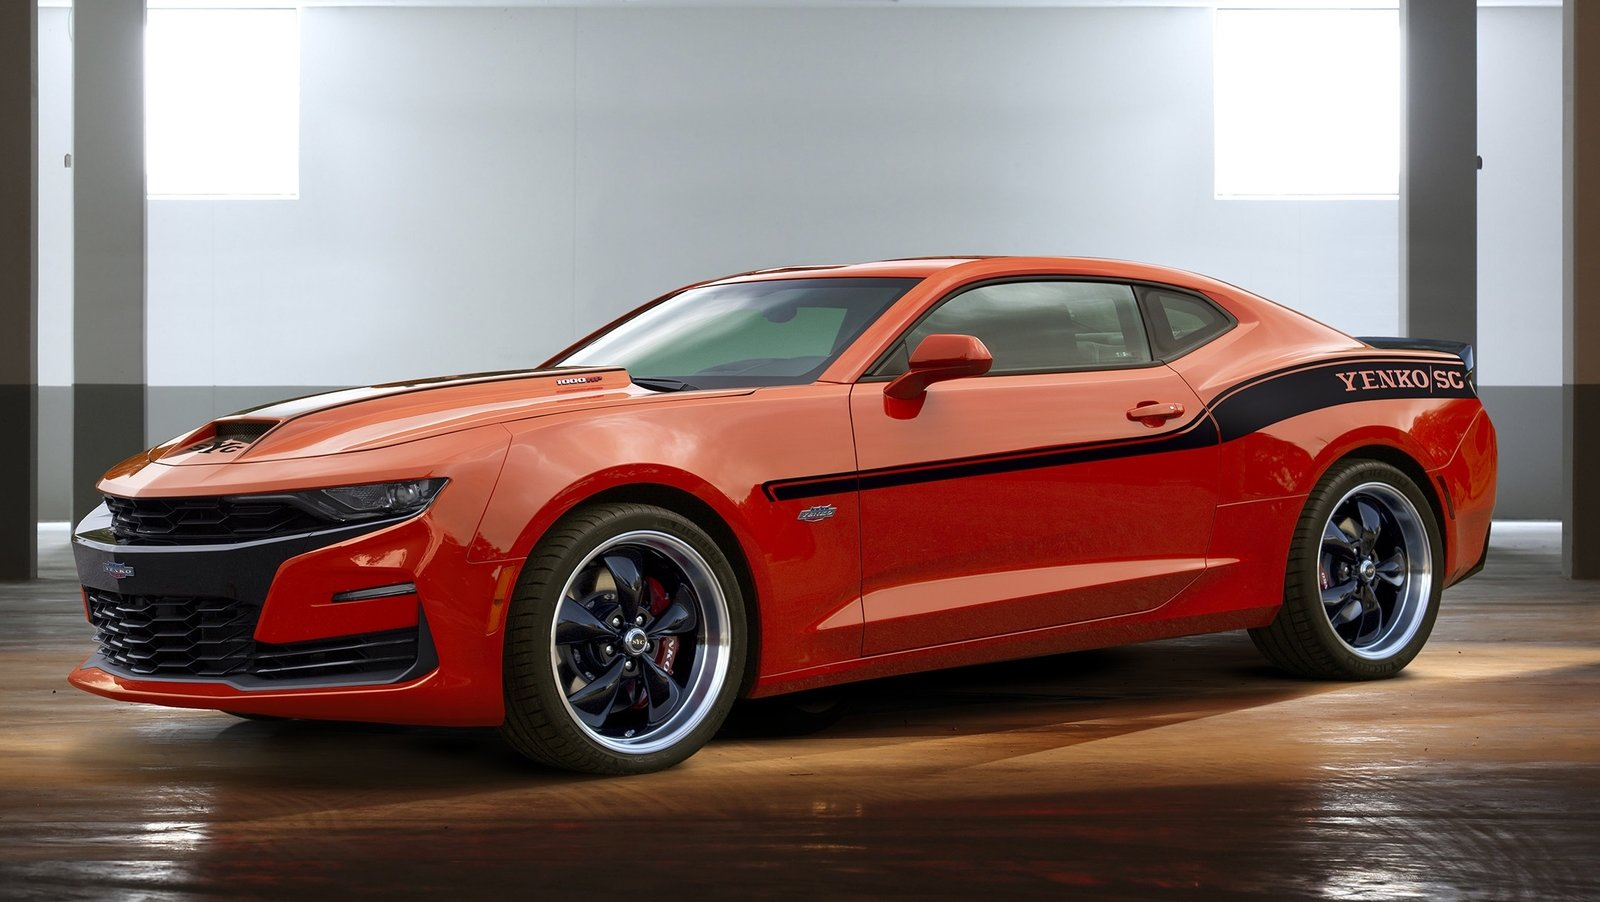 The 2019 Yenko Chevy Camaro Is A 1,000 HP Monstrosity Of A ...